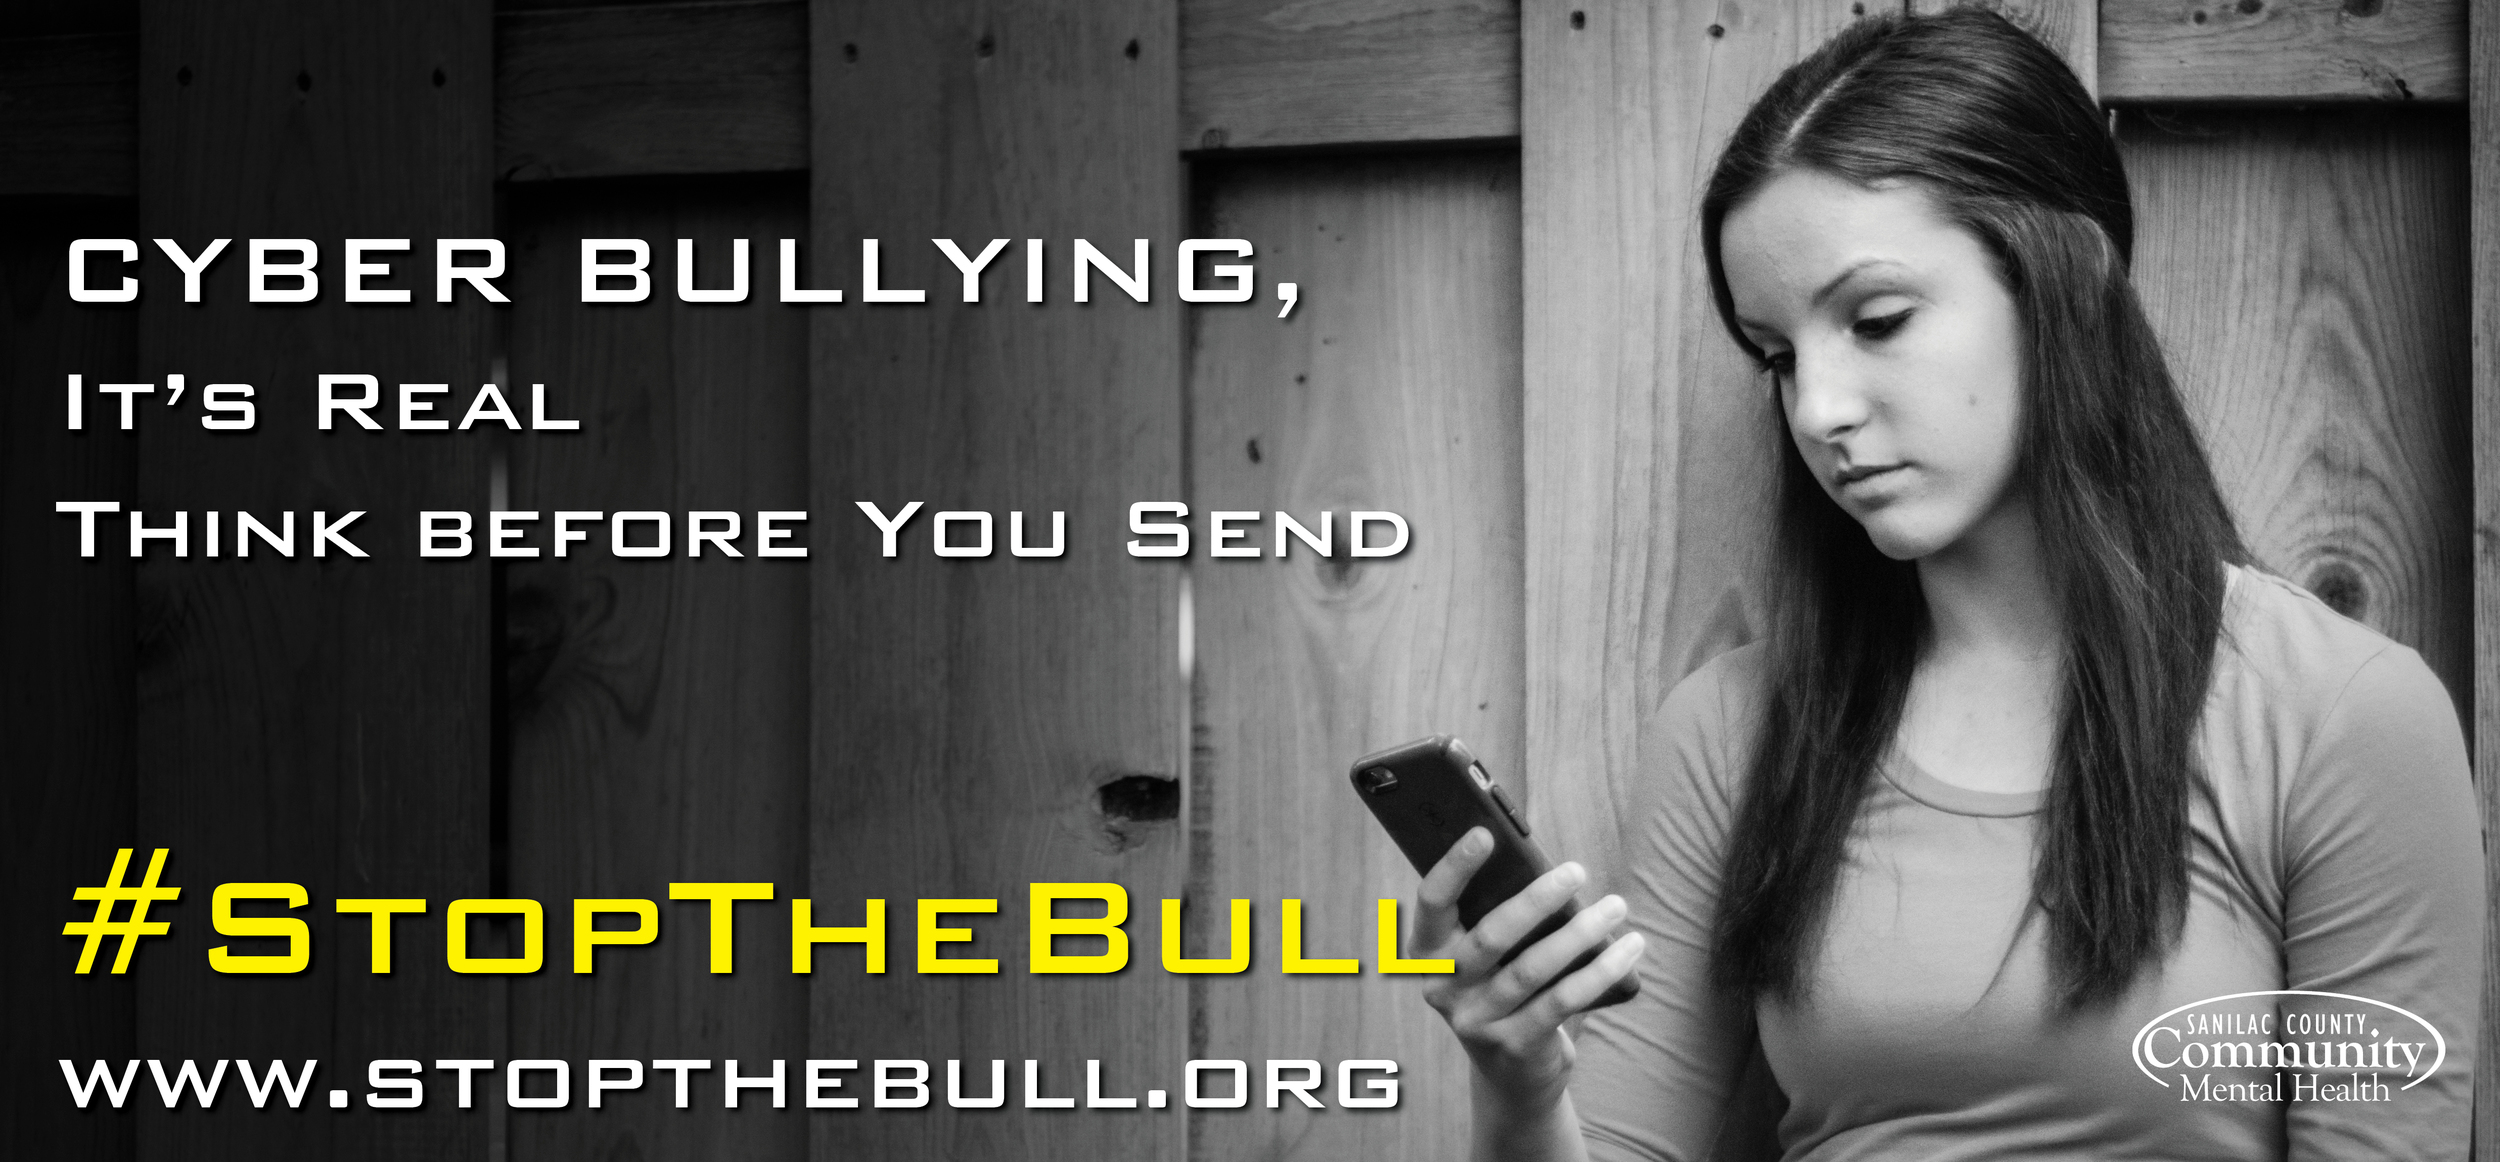 "Bullying, whether in person or electronic, can have a serious impact on a person's mental health over the course of time.  The newer concern that cyber bullying brings with it is that it does not have to be done face to face or ""out loud"".  You could have somebody sitting right next to you bullying or being bullied and never know it.  As with most mental health related issues; prevention, early identification, and early intervention can make a world of difference.  As parents, we should take an active interest in what is being done on electronic devices in our homes or in the possession of our children.  Anybody, adult or child, who knows of cyber bullying taking place can bring it out in the open and help put an end to it.  If you know something, say something.      #StopTheBull"